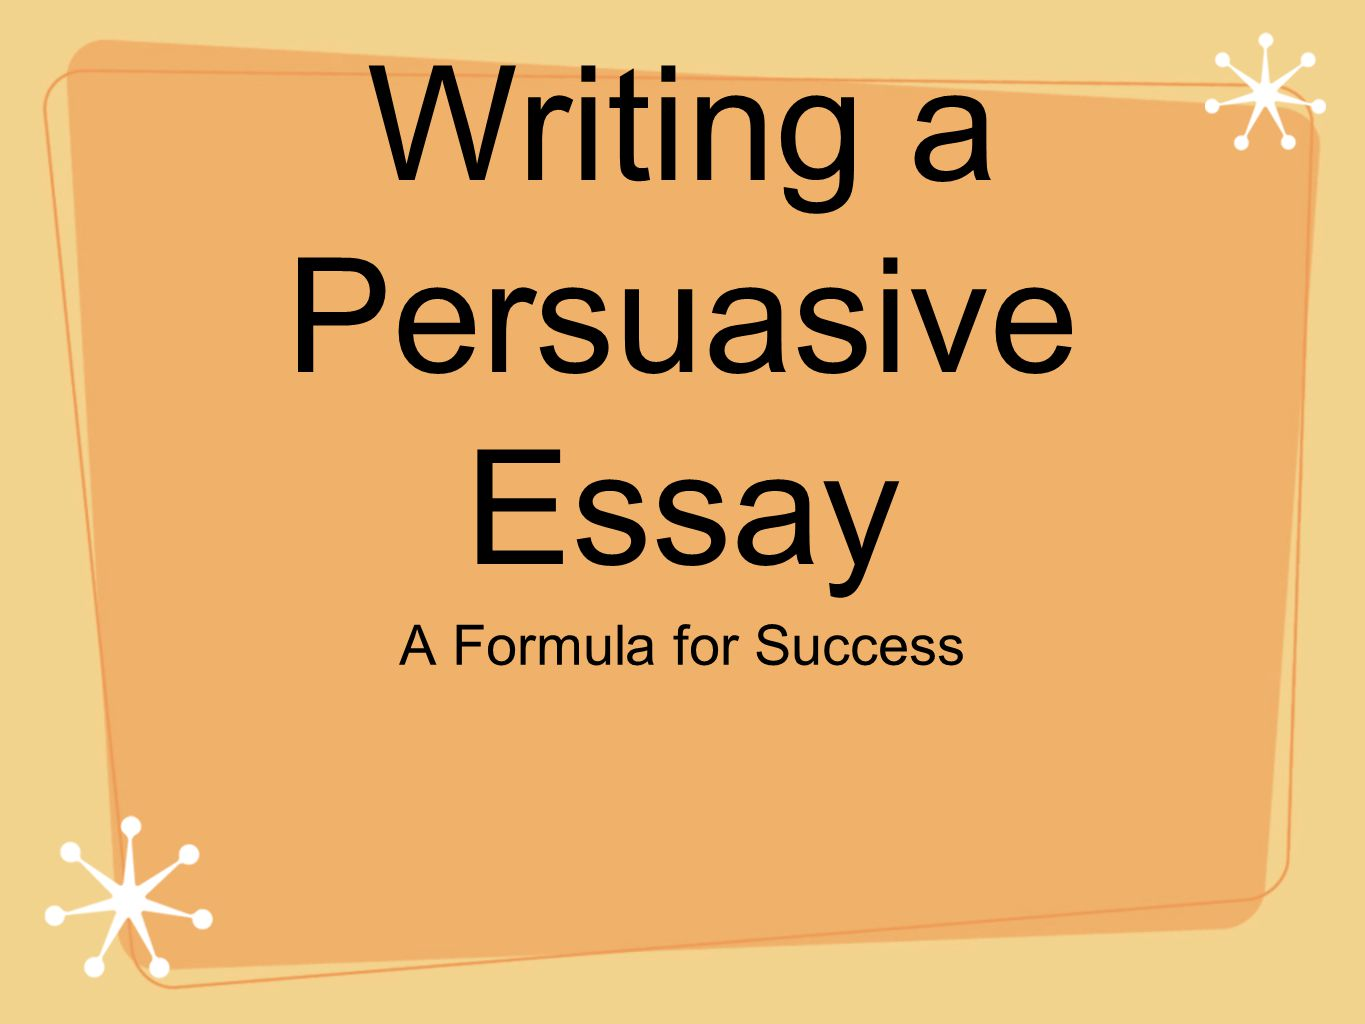 objective for writing a persuasive essay Writing an argumentative essay the argumentative essay, although bearing many similarities to the persuasive (argument) essay, has several very distinct differences the objective of a persuasive essay is to win the reader over to writing the argumentative essay.